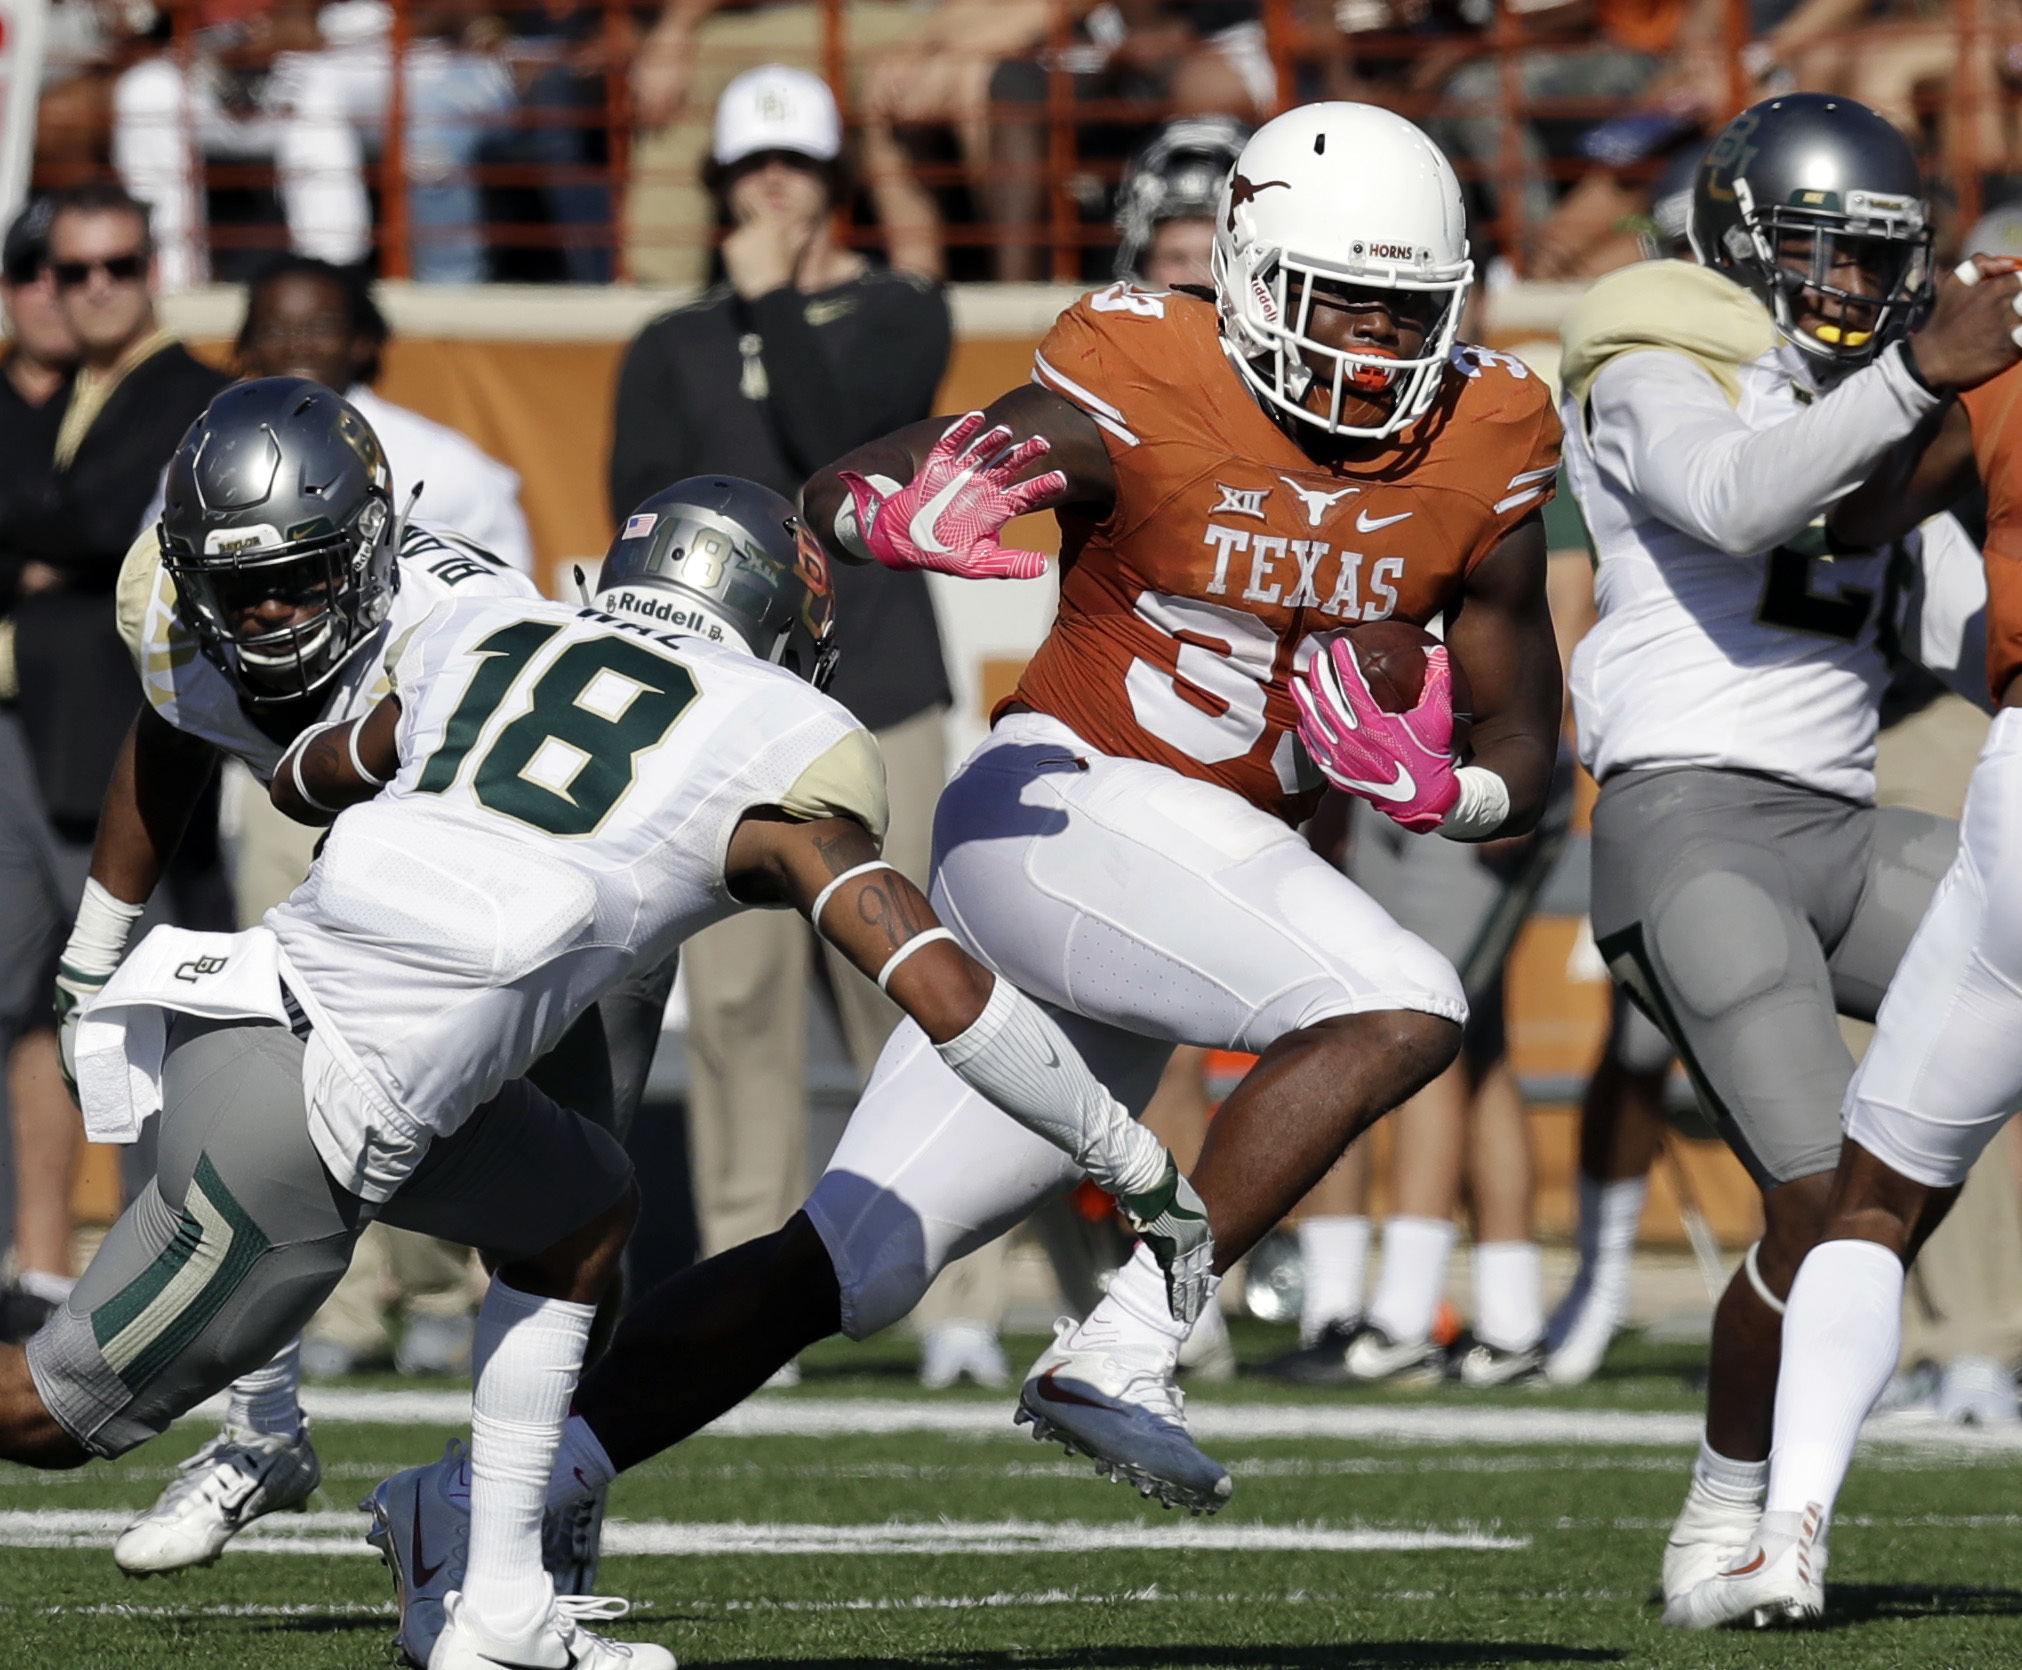 FILE - In this Saturday, Oct. 29, 2016, file photo, Texas running back D'Onta Foreman (33) runs past Baylor safety Chance Waz (18) during an NCAA college football game in Austin, Texas. Foreman leads the Big 12 with 158 yards rushing per game, which is se